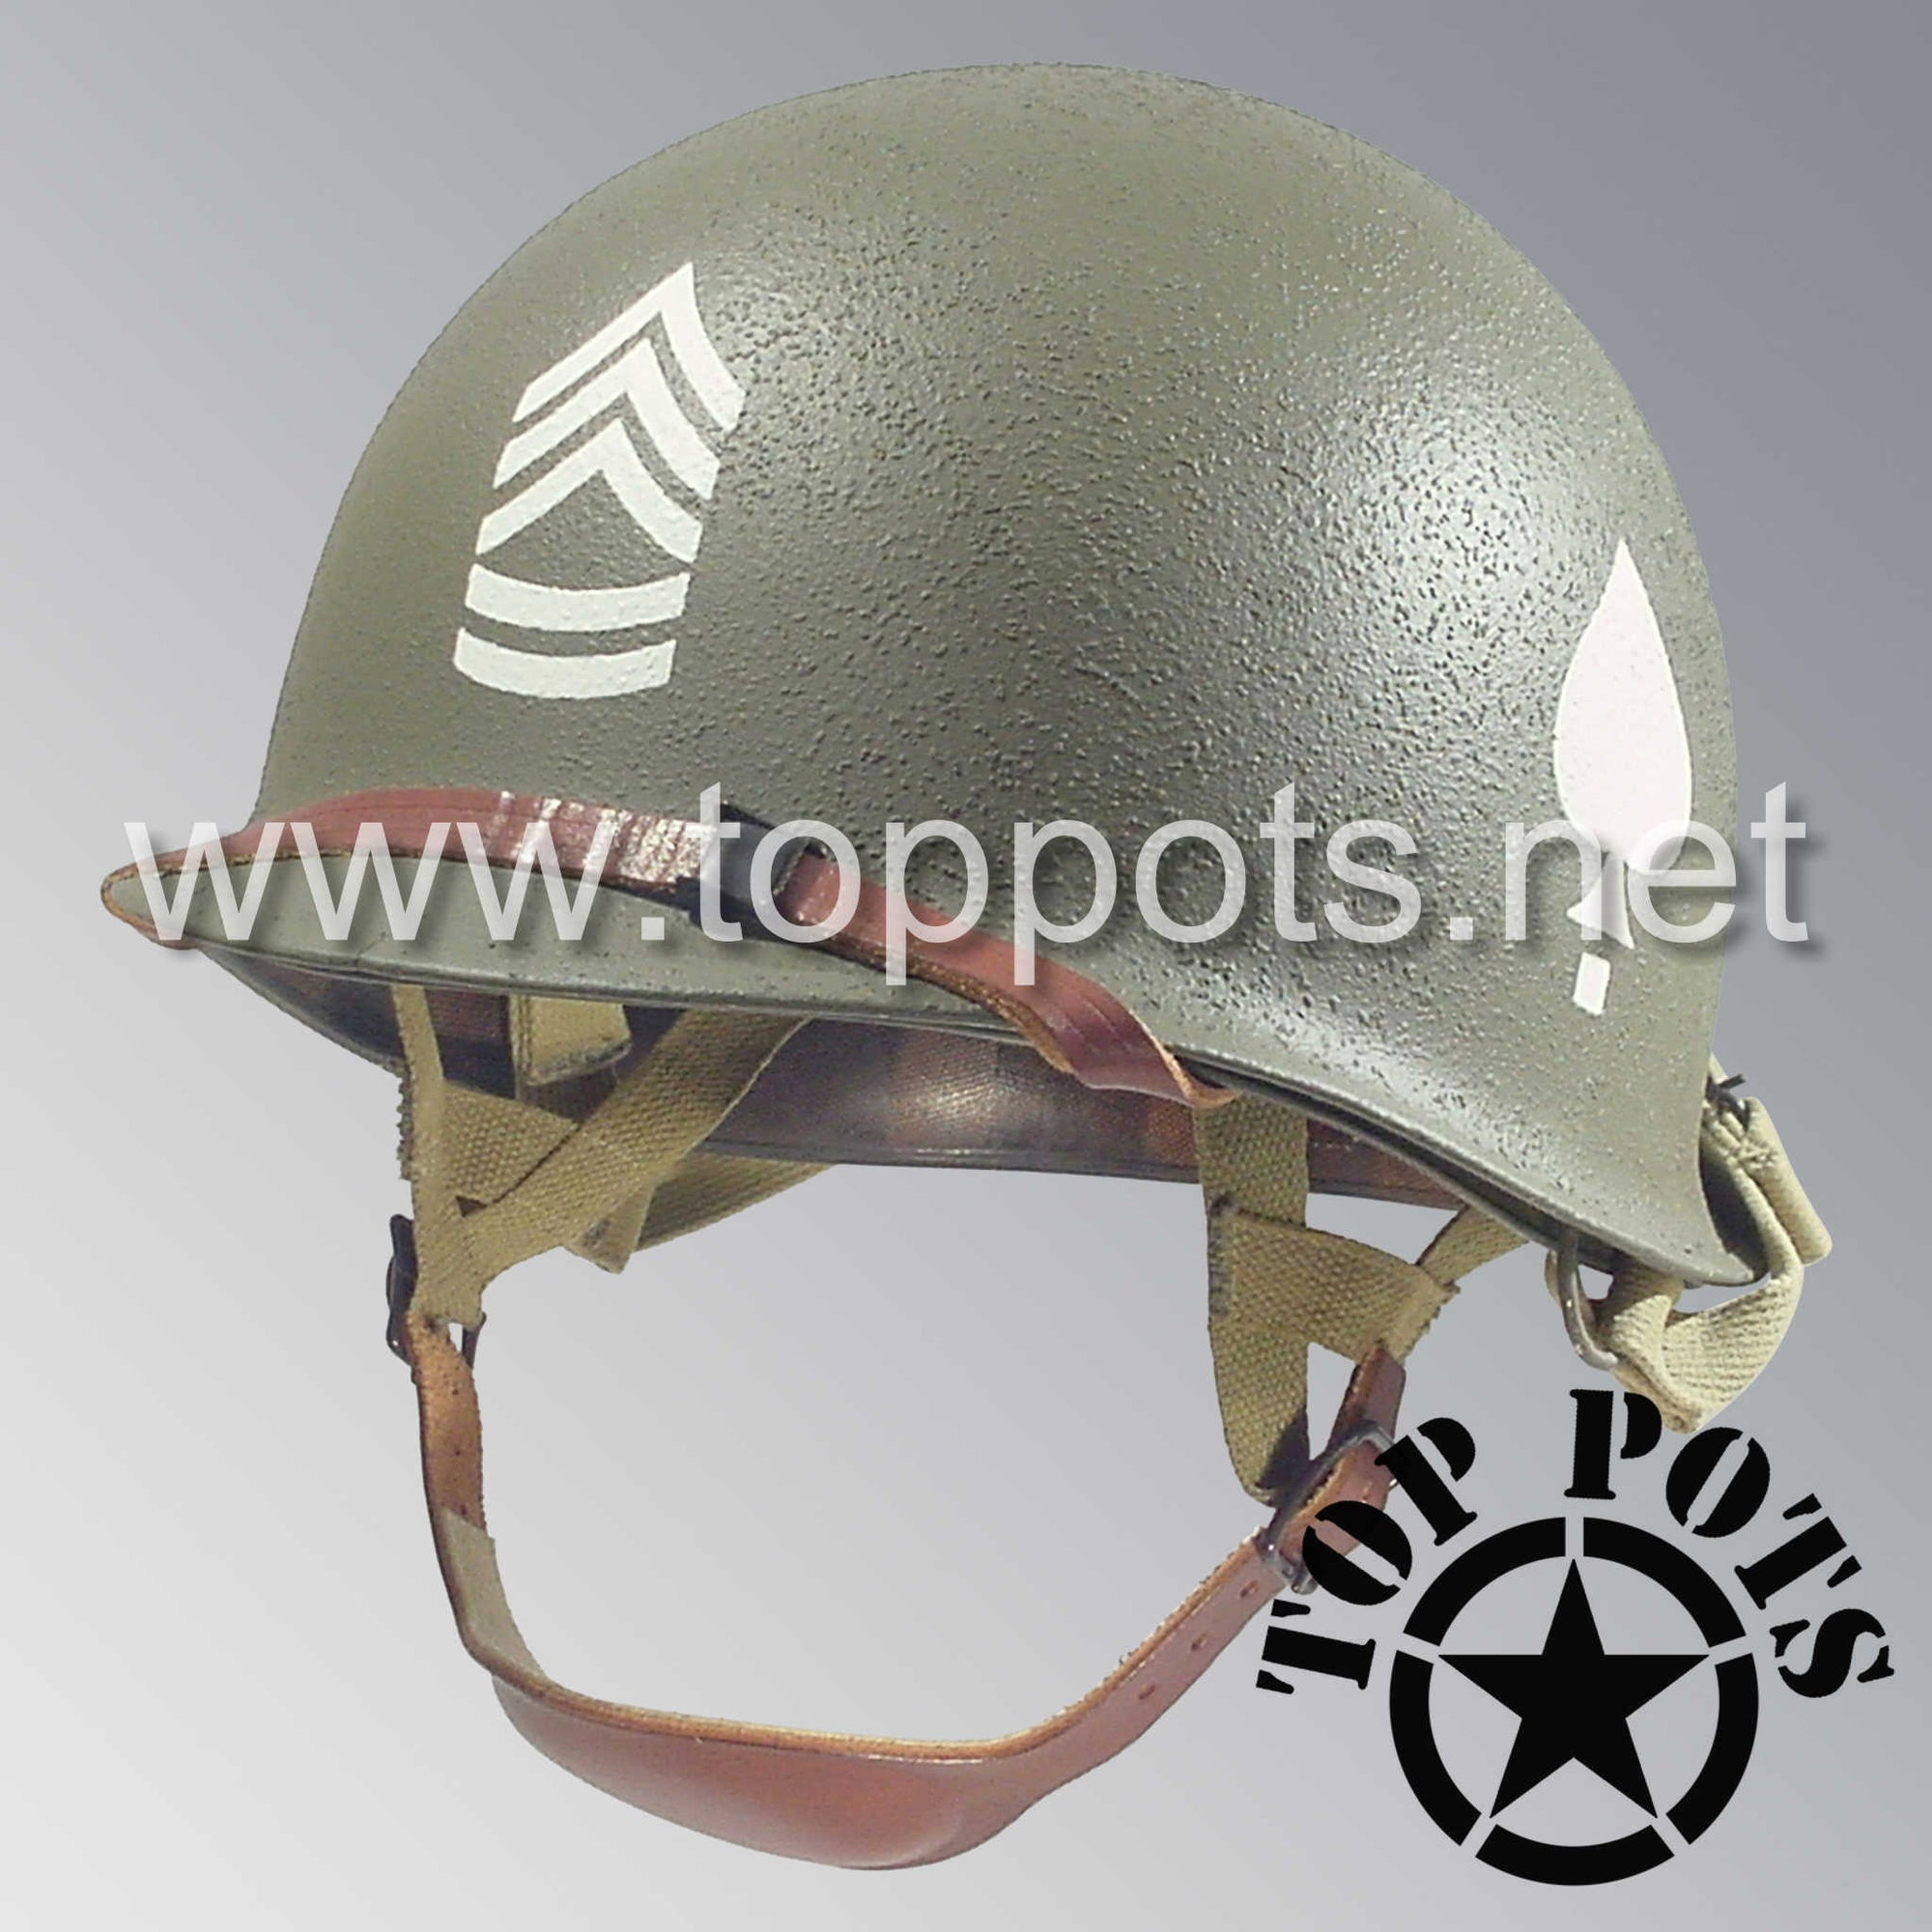 Image 1 of WWII US Army Restored Original M2 Paratrooper Airborne Helmet D Bale Shell and Liner with 506th PIR 2nd Battalion Sergeant 1st Class NCO Emblem